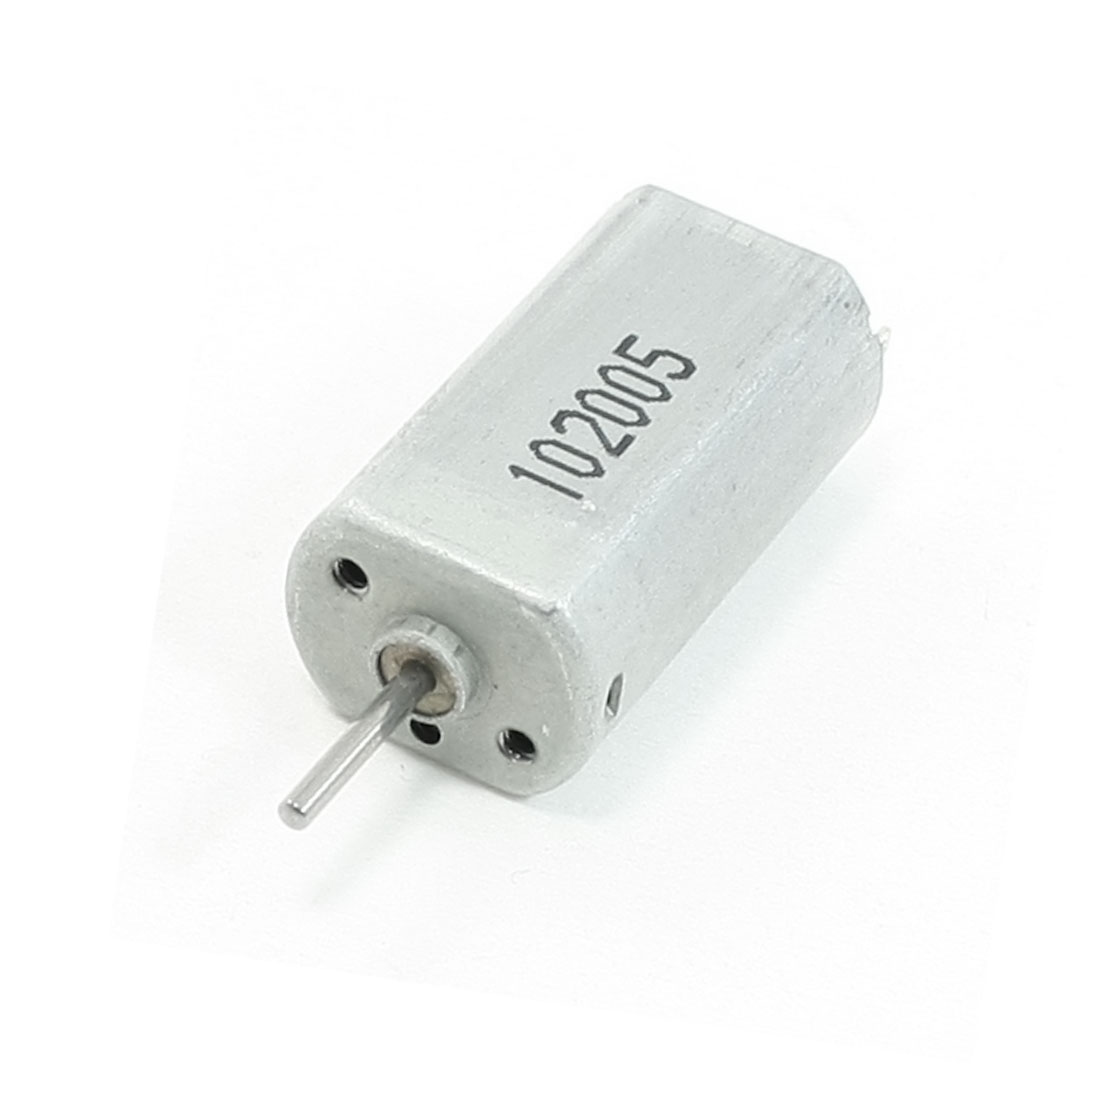 1.5mm Dia Shaft 2 Terminals Magnetic Electric Motor DC 12V 1000RPM